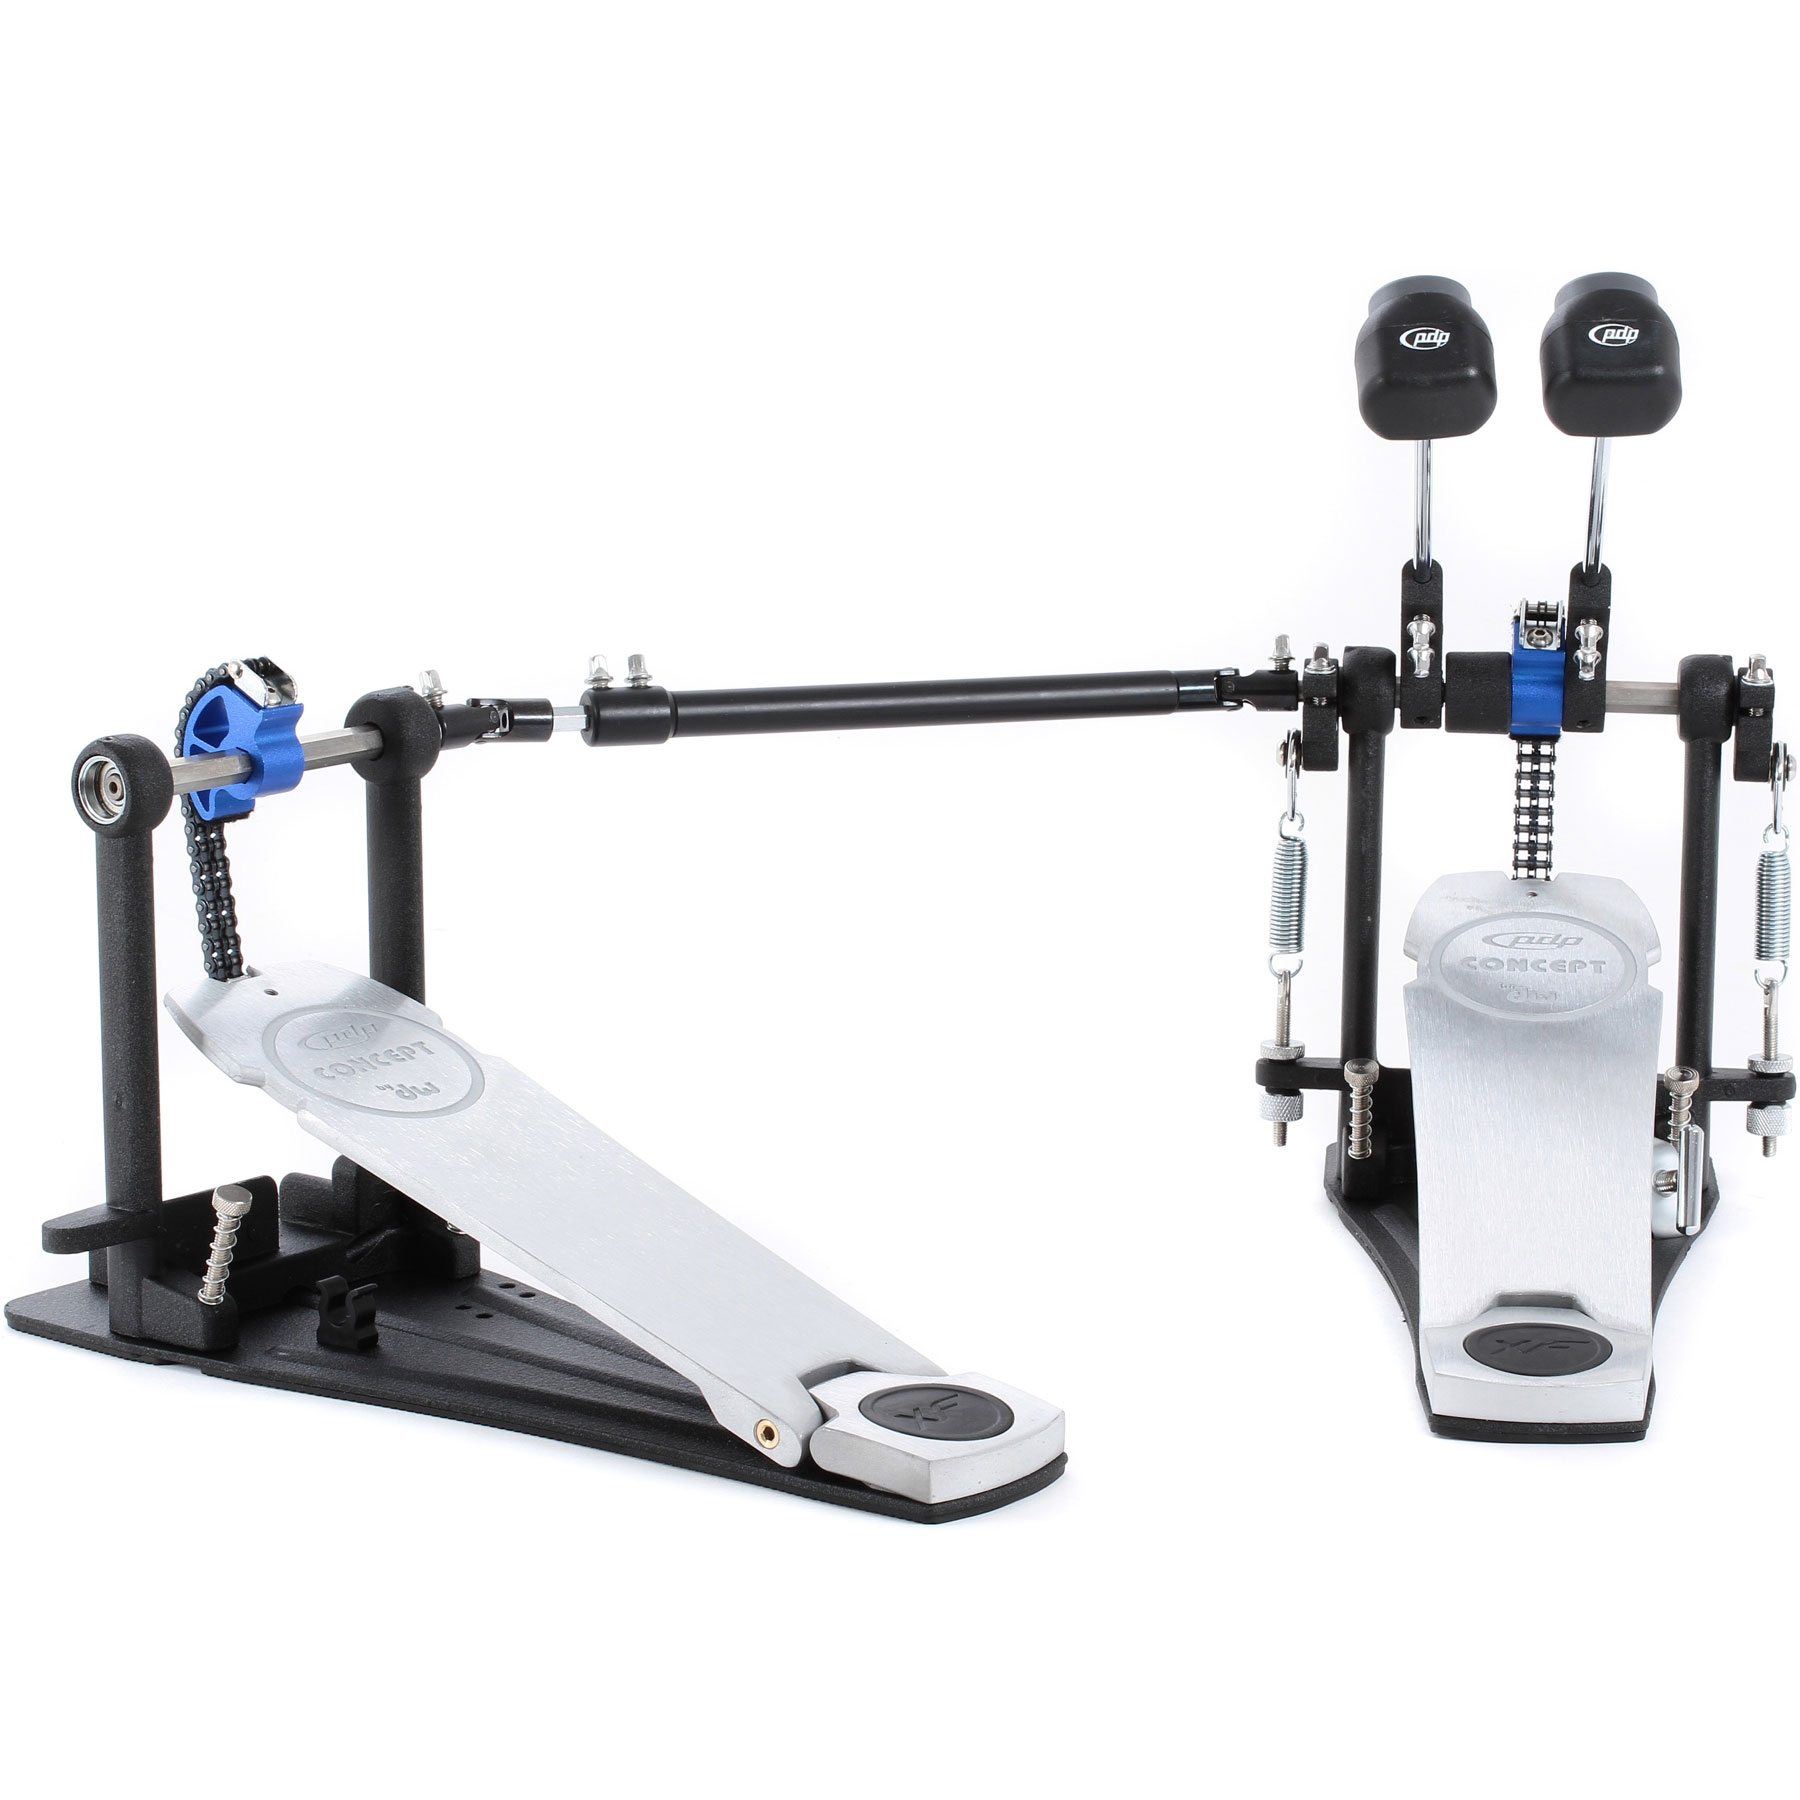 PDP Concept Double Bass Drum Pedal with Extended Footboard